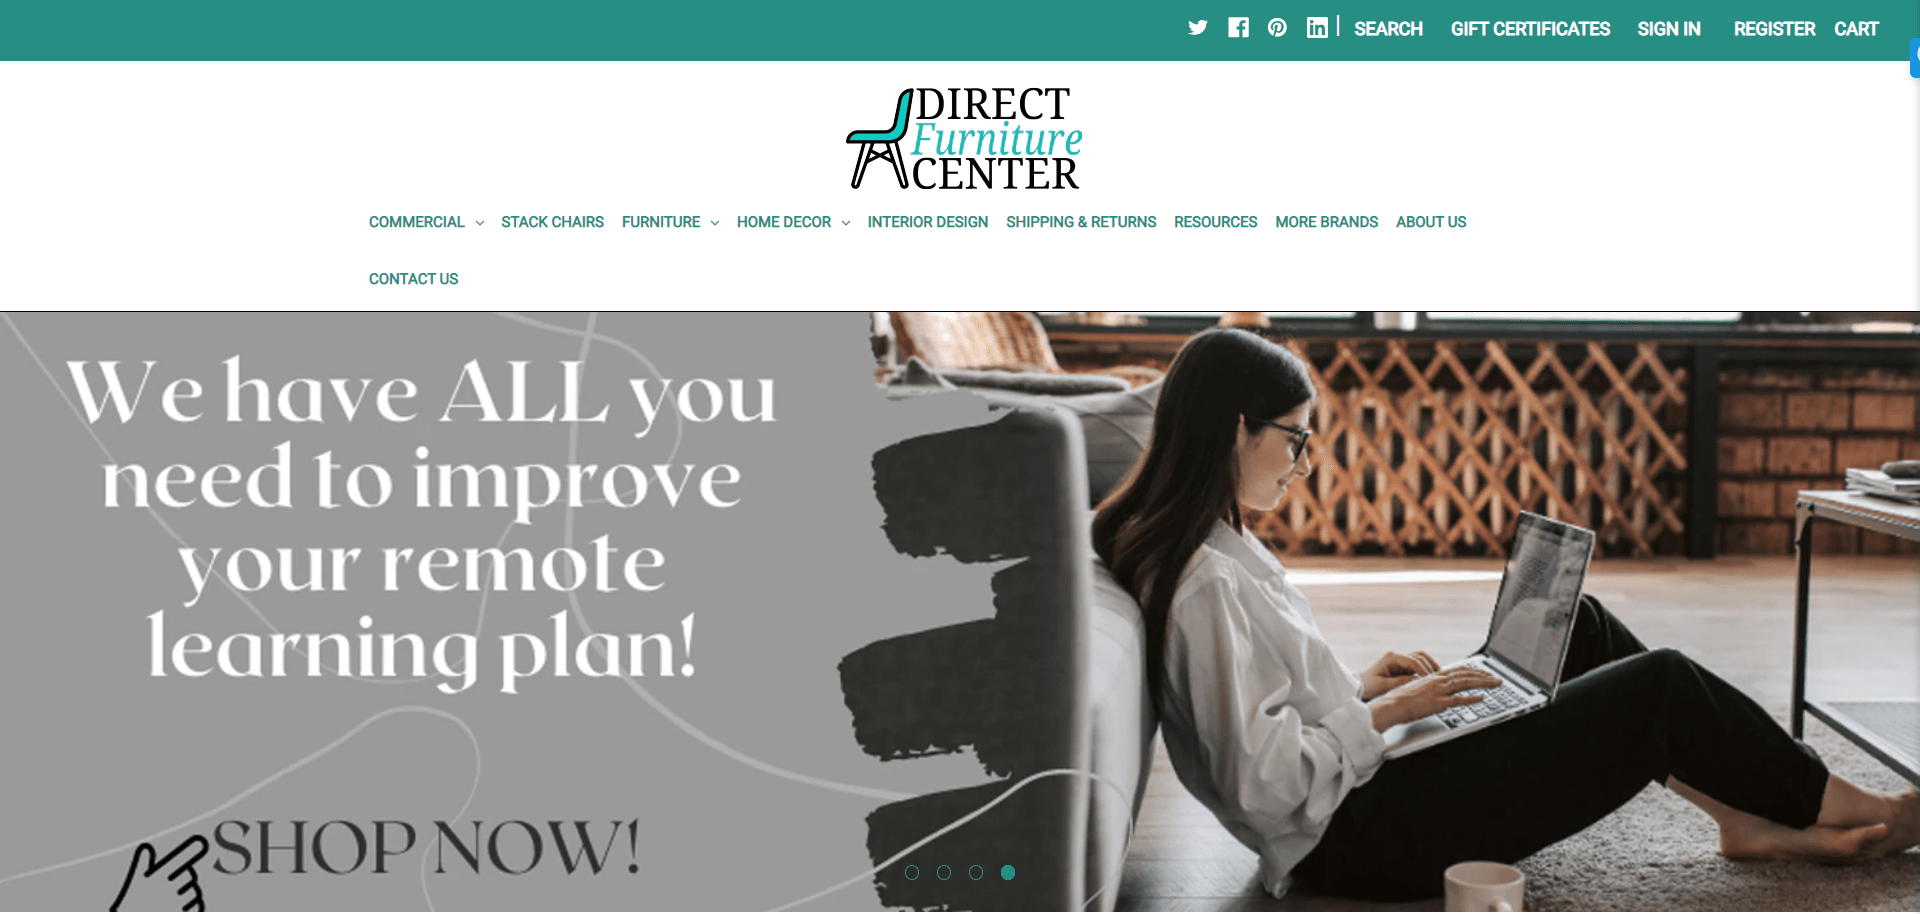 Direct furniture center portfolio website